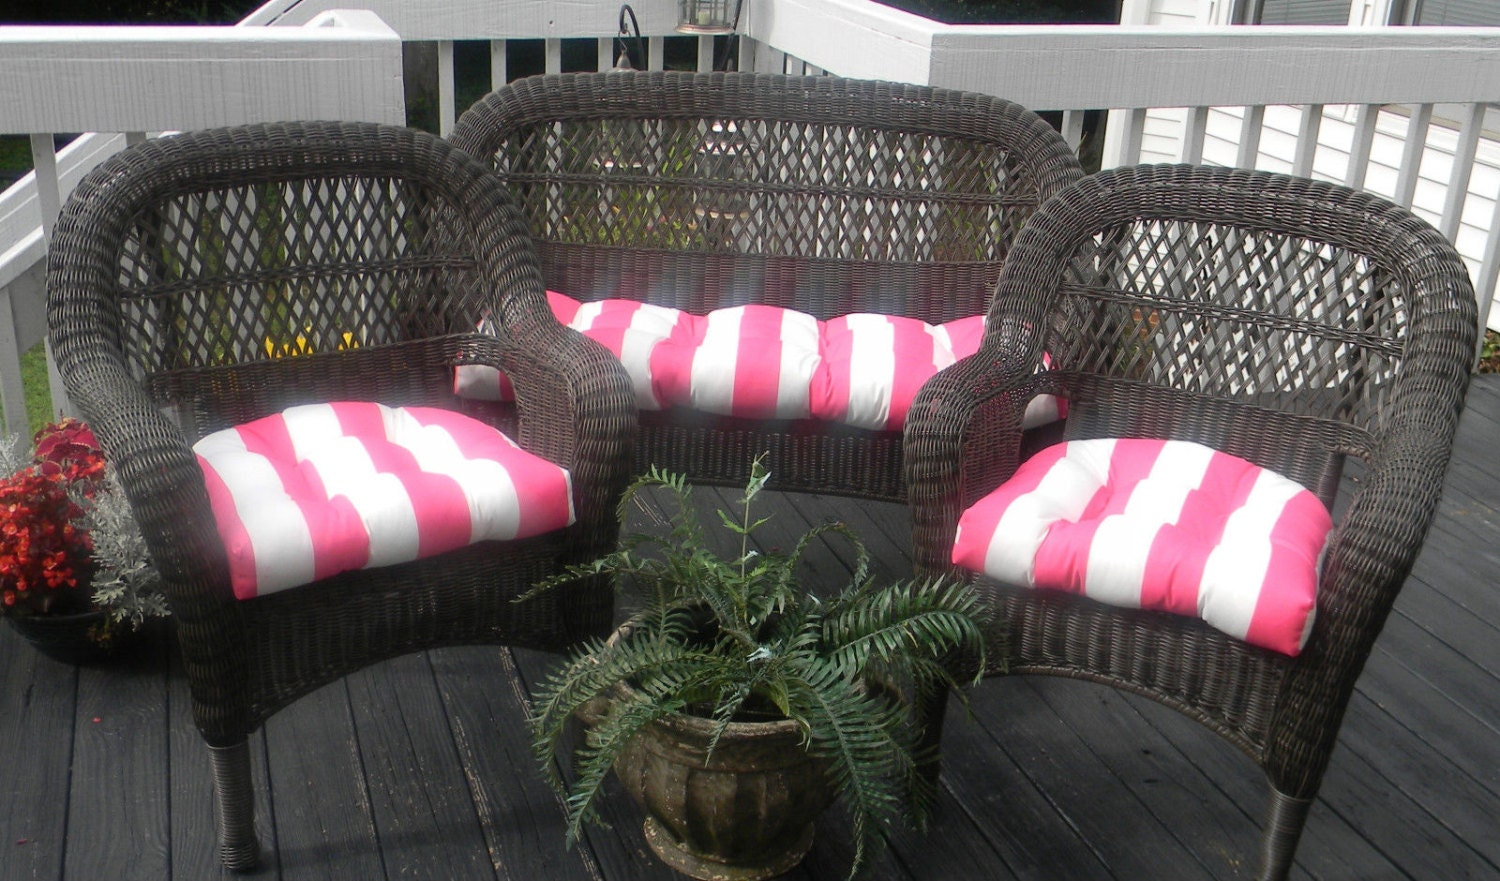 Wicker Cushion 3 Pc Set Preppy Pink Amp White Stripe Indoor